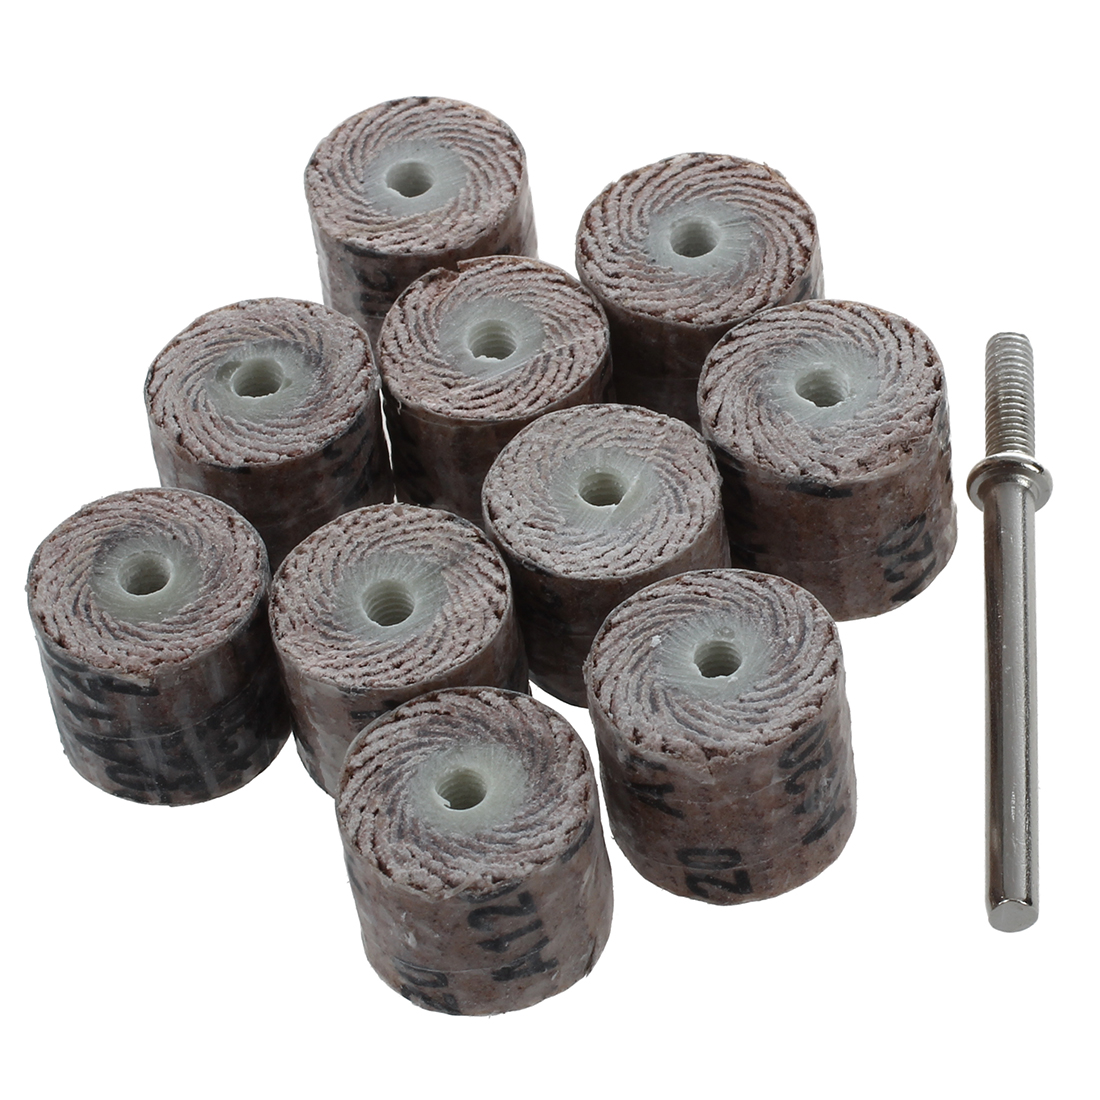 12 X 14 X 3mm 120-grit Brush Grinding Tool Flap Wheel Fine Hho 10 Pieces To Be Highly Praised And Appreciated By The Consuming Public